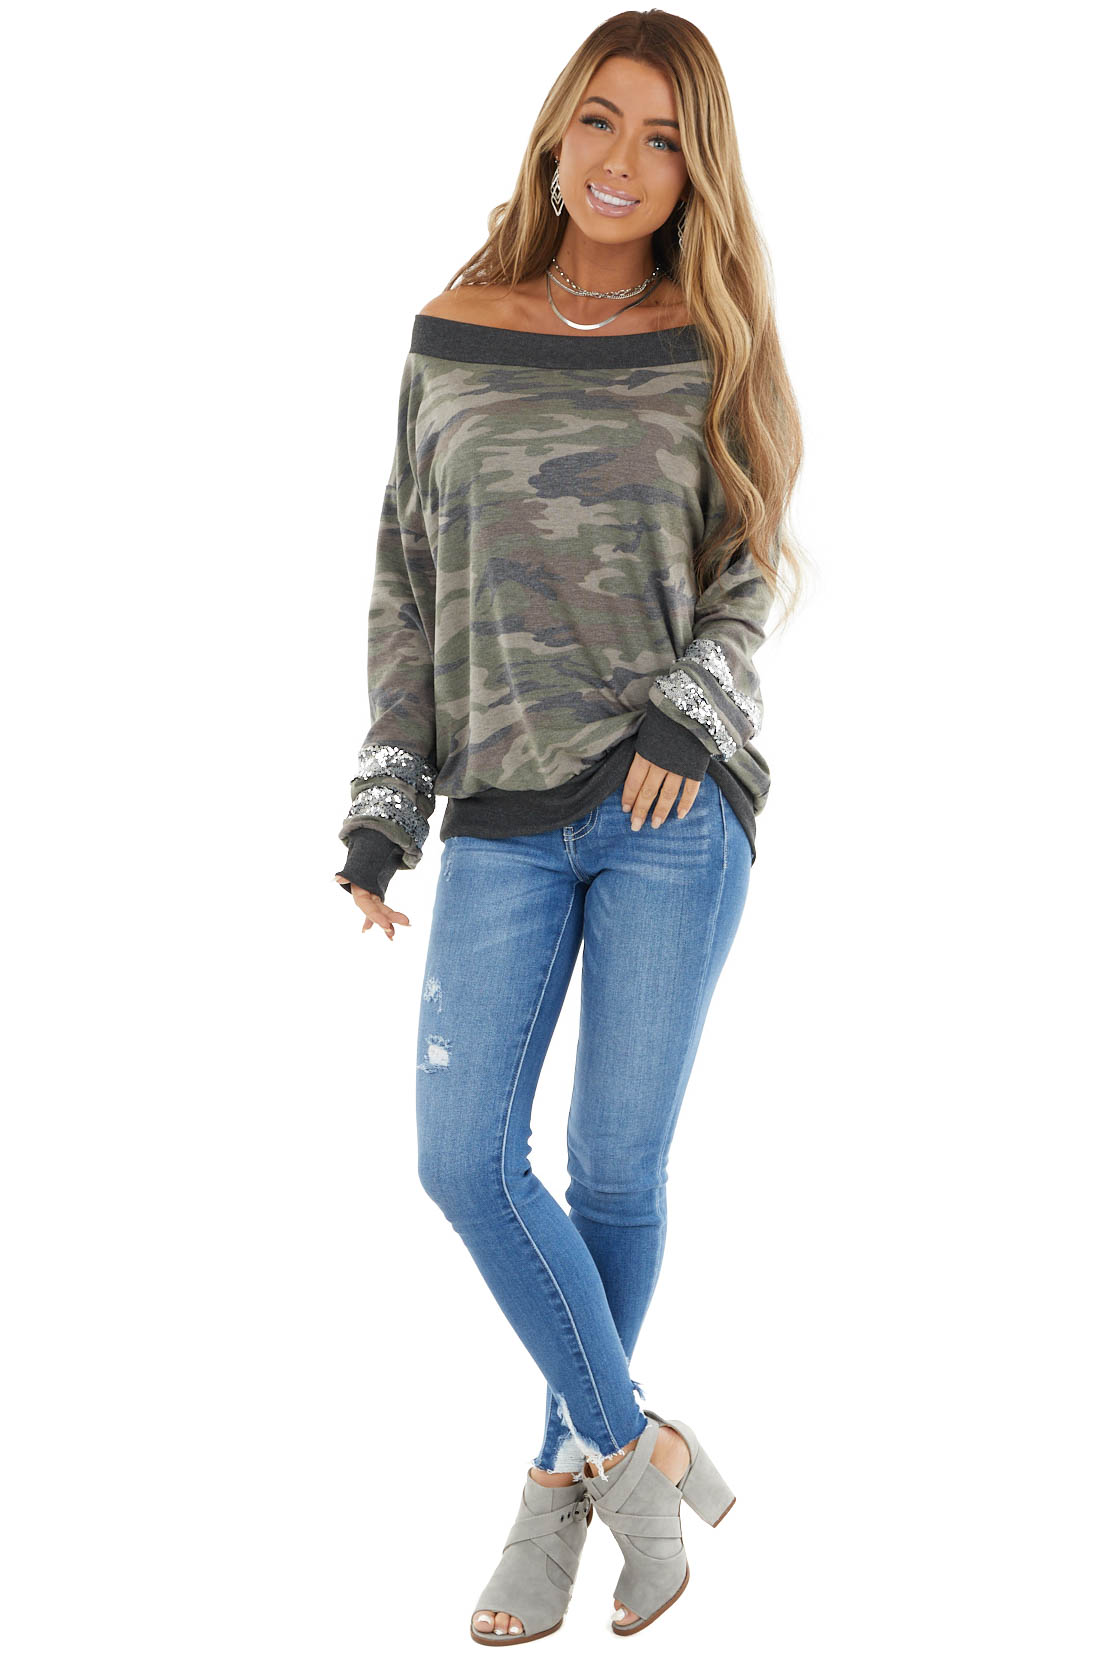 Hunter Green Camo Long Sleeve Top with Silver Sequins Detail